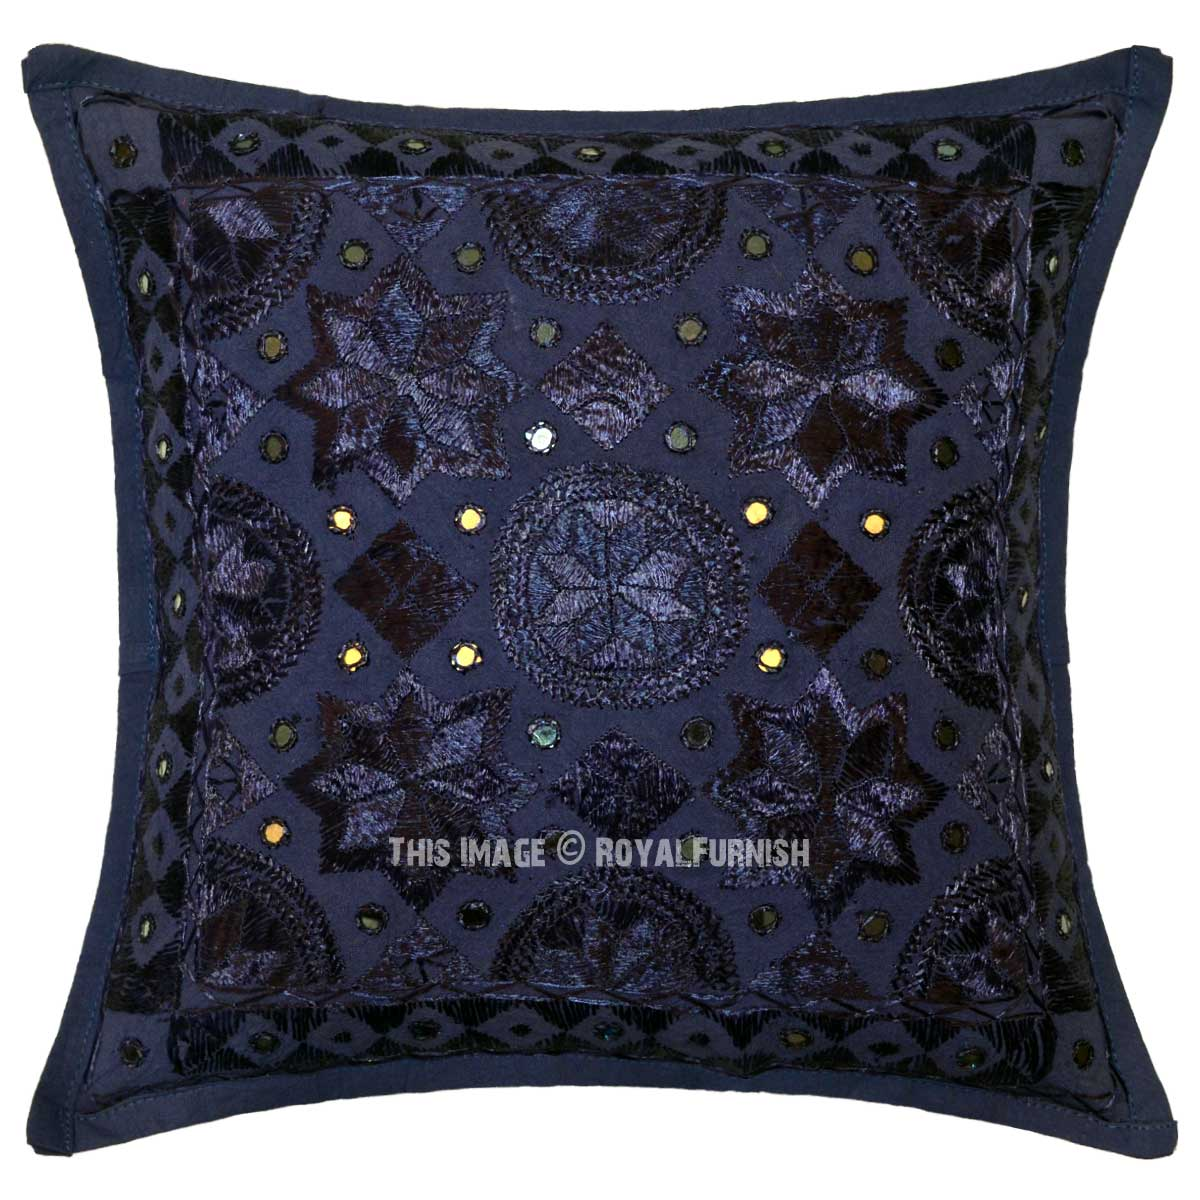 Unique Decorative Pillows For Couch : Blue Decorative Star Mirrored Unique Handmade Throw Pillow Case 16X16 - RoyalFurnish.com